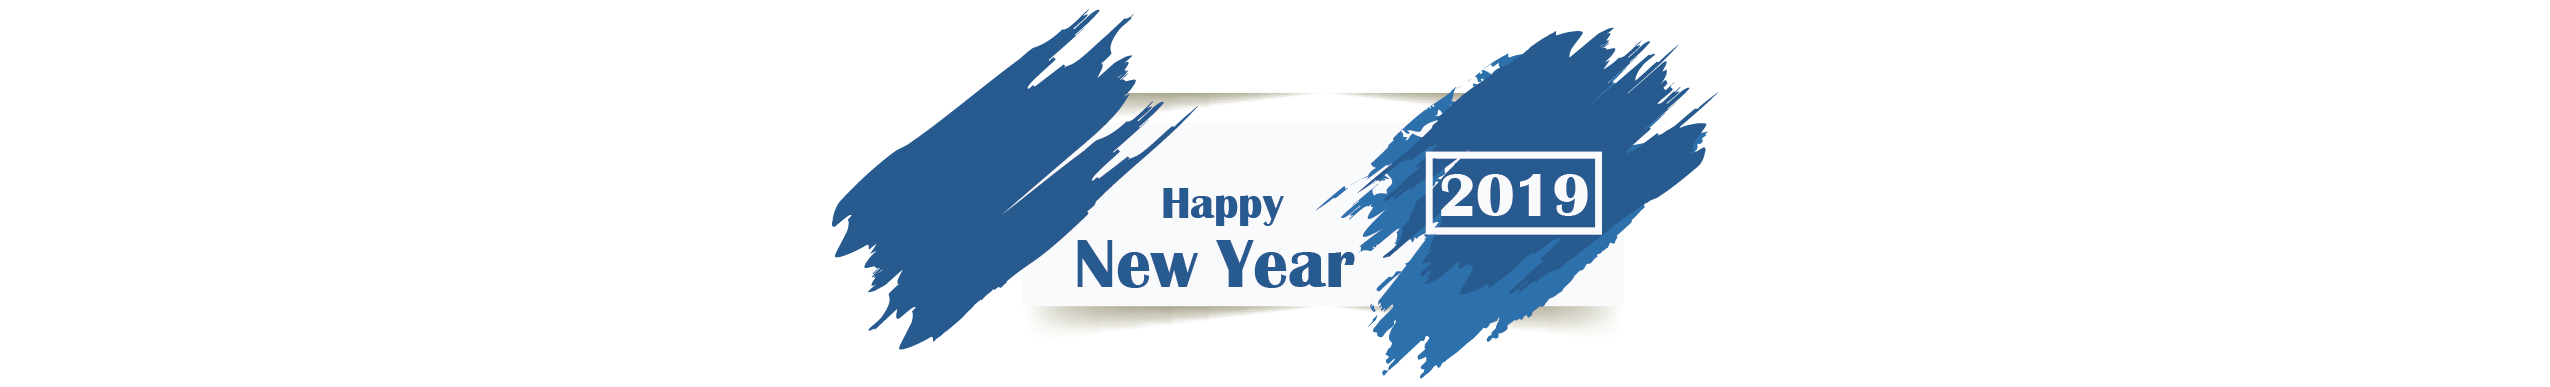 Banner Happy New Year 2019 Picture